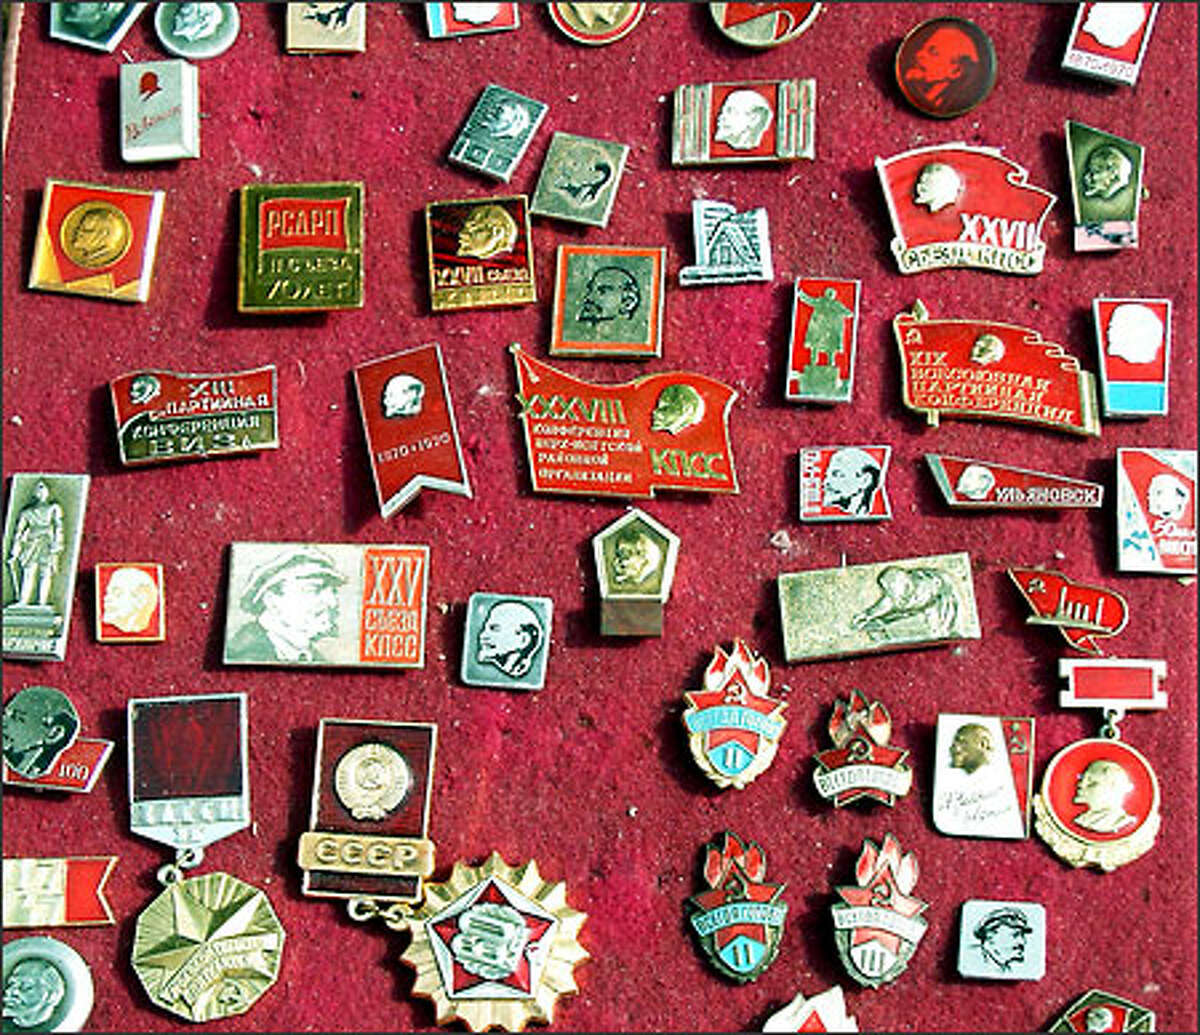 Communist leader Vladimir Lenin does somersaults in his grave as today's post-Soviet Russians peddle over-priced pins bearing his image to western tourists at a market in Yekaterinburg.